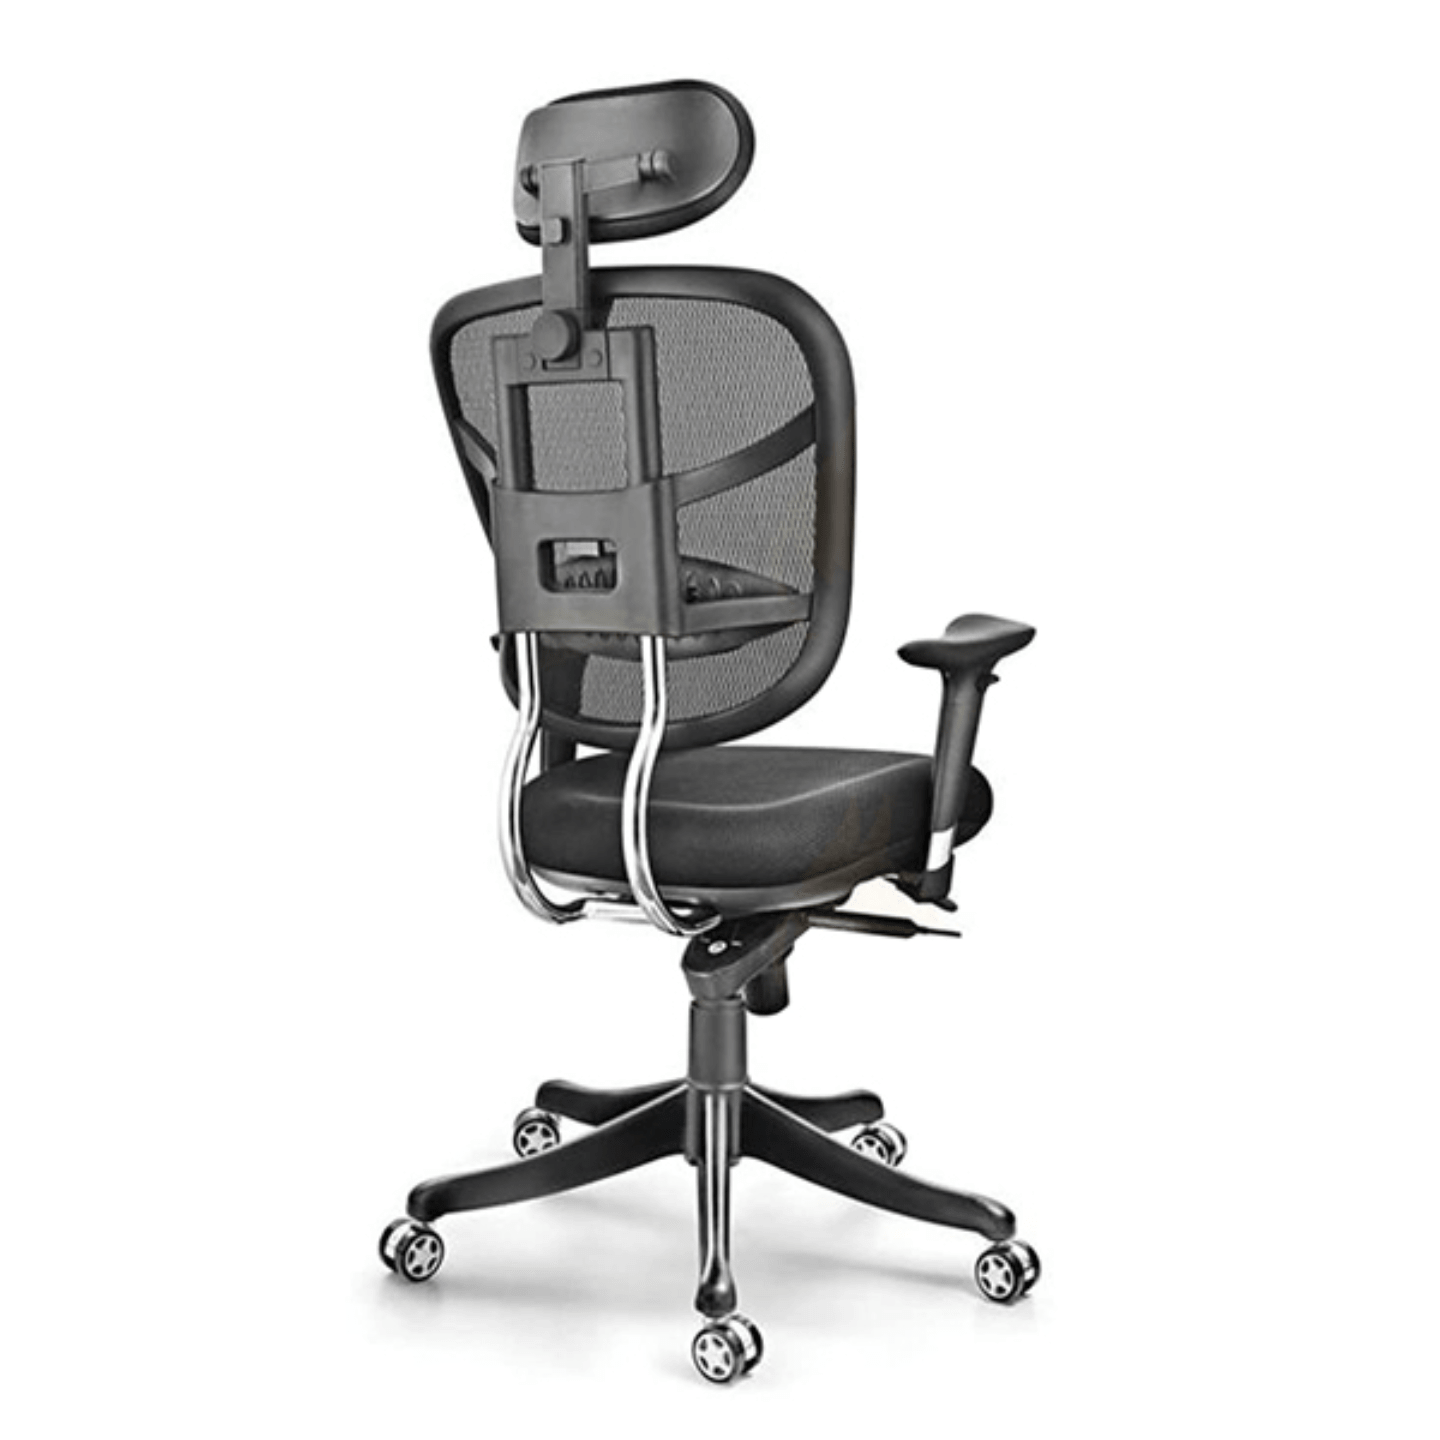 Home Office Chair (Model - Kratos)